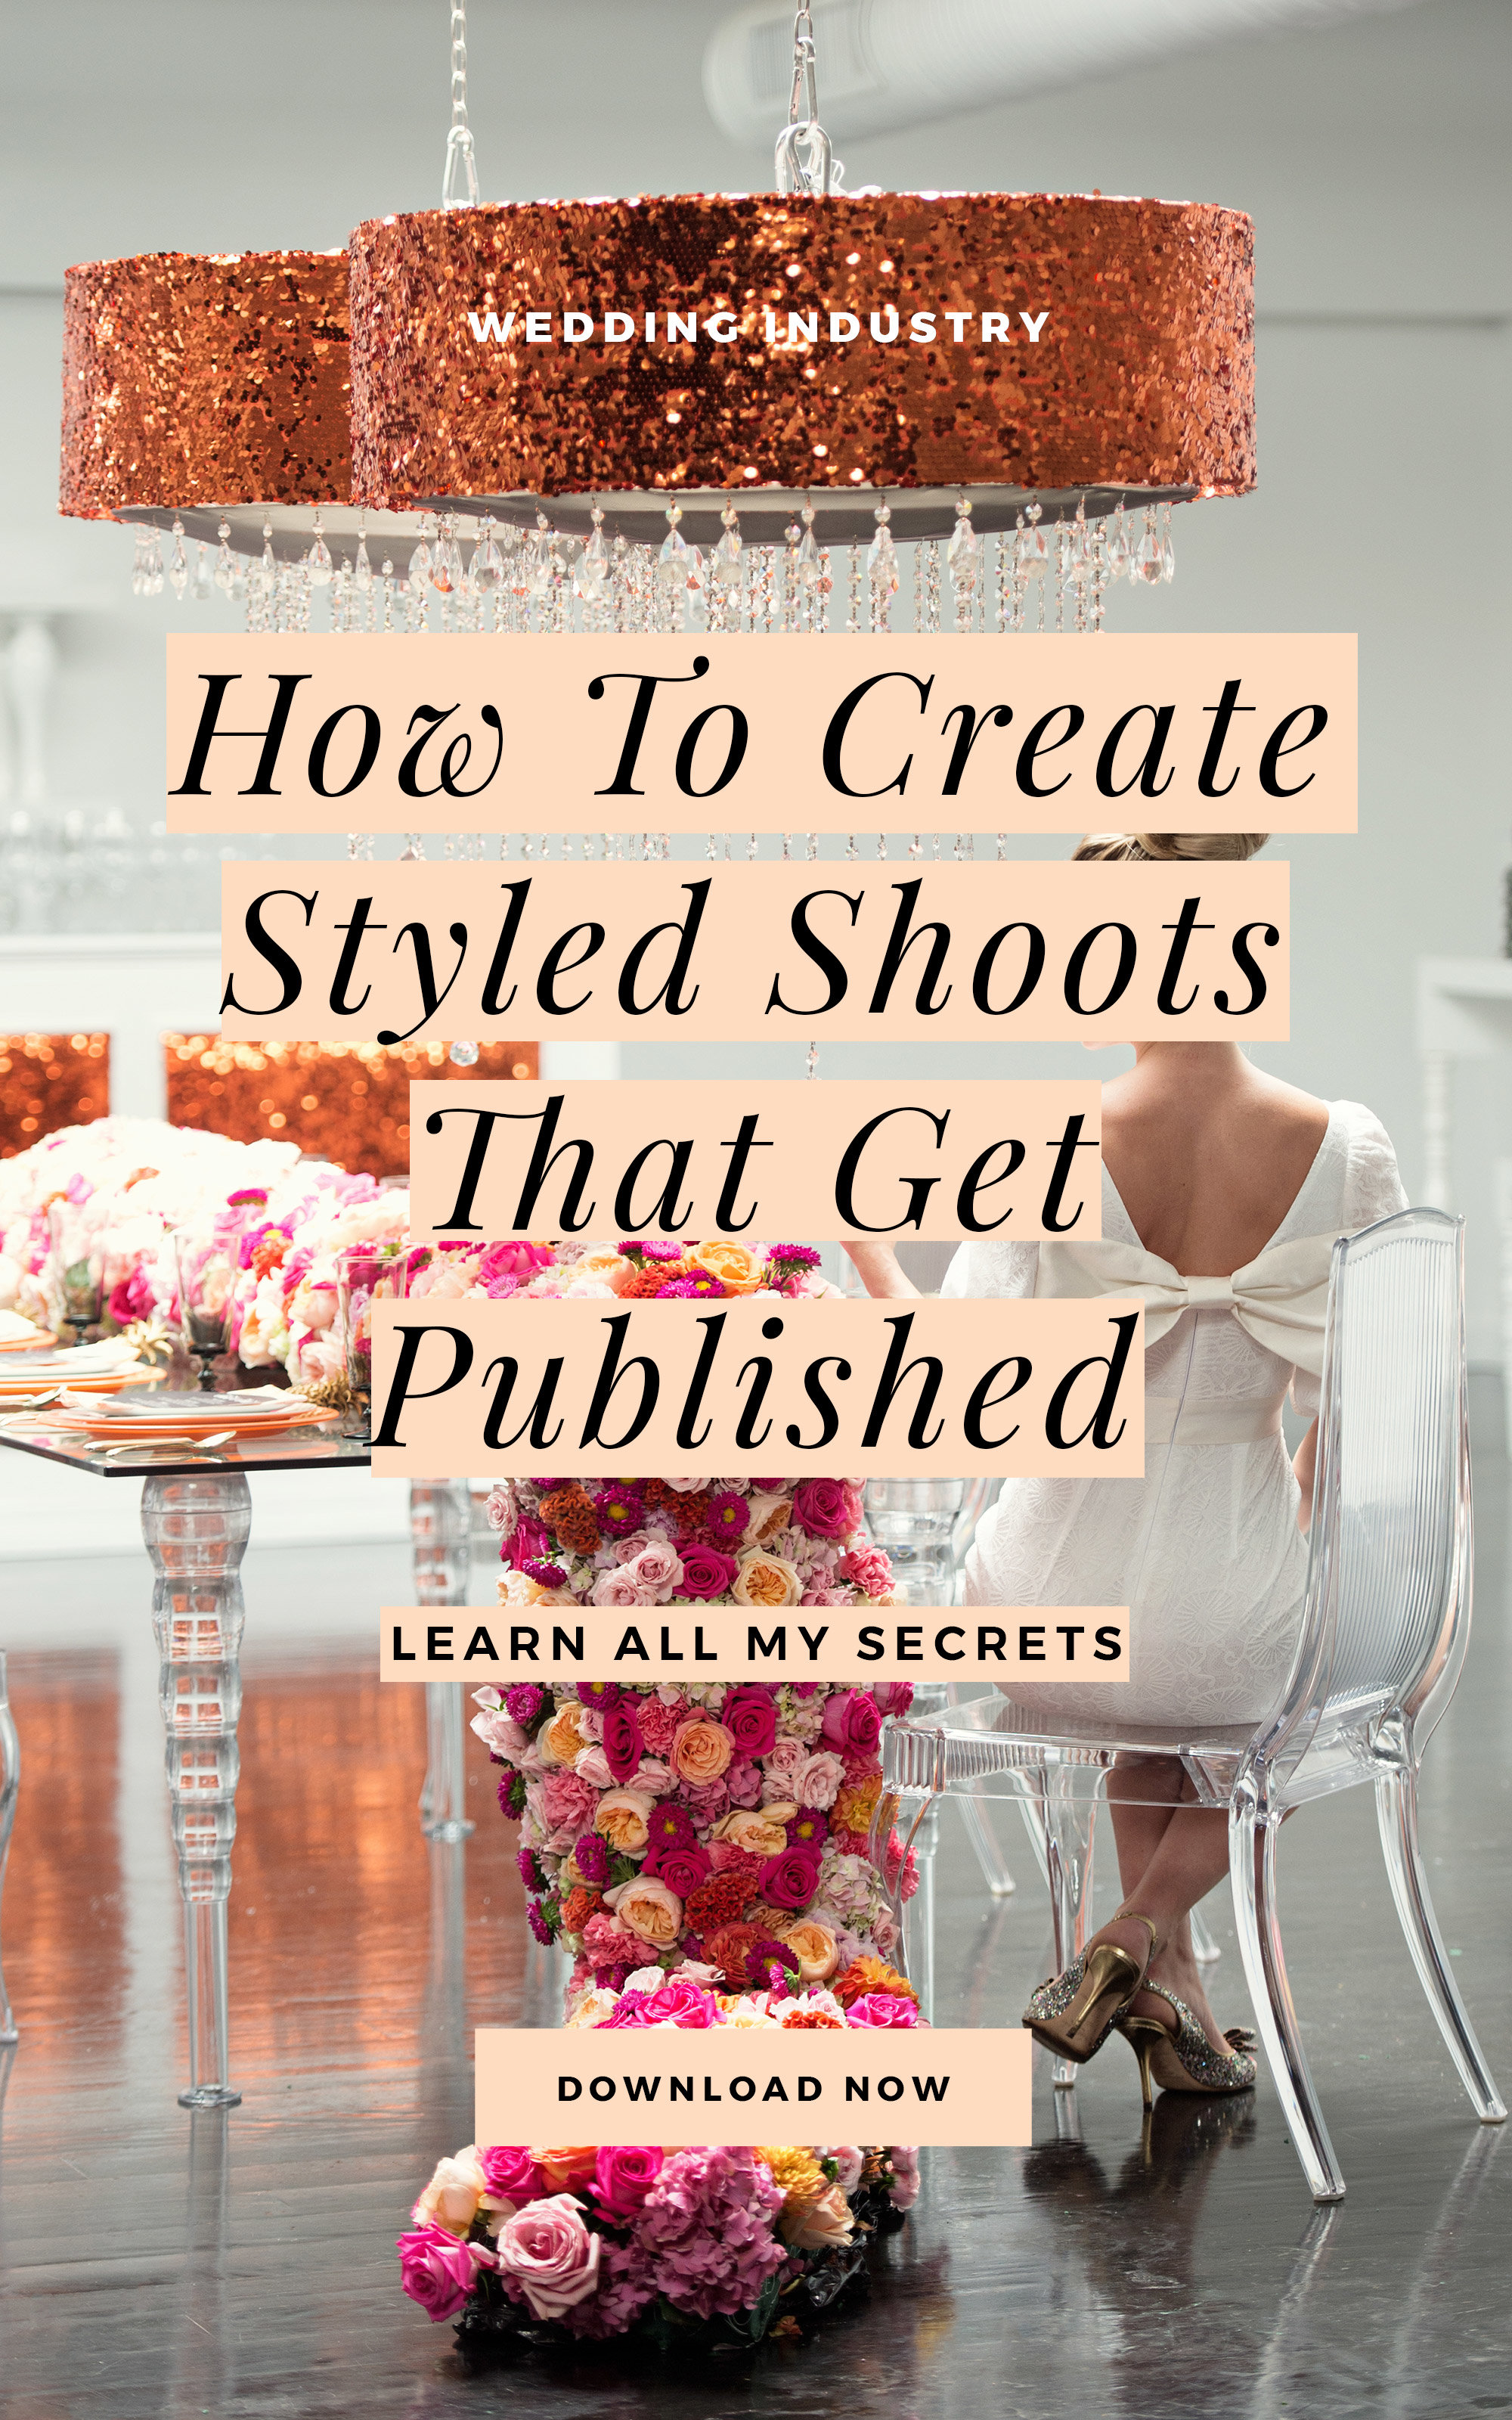 I've designed over 40 styled shoots during my career! Many of these projects have landed on the cover of magazines and they also scored me a 2 book deal with Schiffer Publishing. This FREE guidebook shares ALL my secrets on how to create a styled shoot that gets published. If you're looking for styled shoot tips, tricks, and hacks, then this guidebook is exactly what you need! Even if you've never styled a photoshoot before, I will walk you through what you need to know, how to prepare, and how to make the most of the process. Download The Ultimate Guide: How To Create Styled Shoots That Get PUBLISHED! #weddingpros #weddingplanner #weddingphotographer #candicecoppola